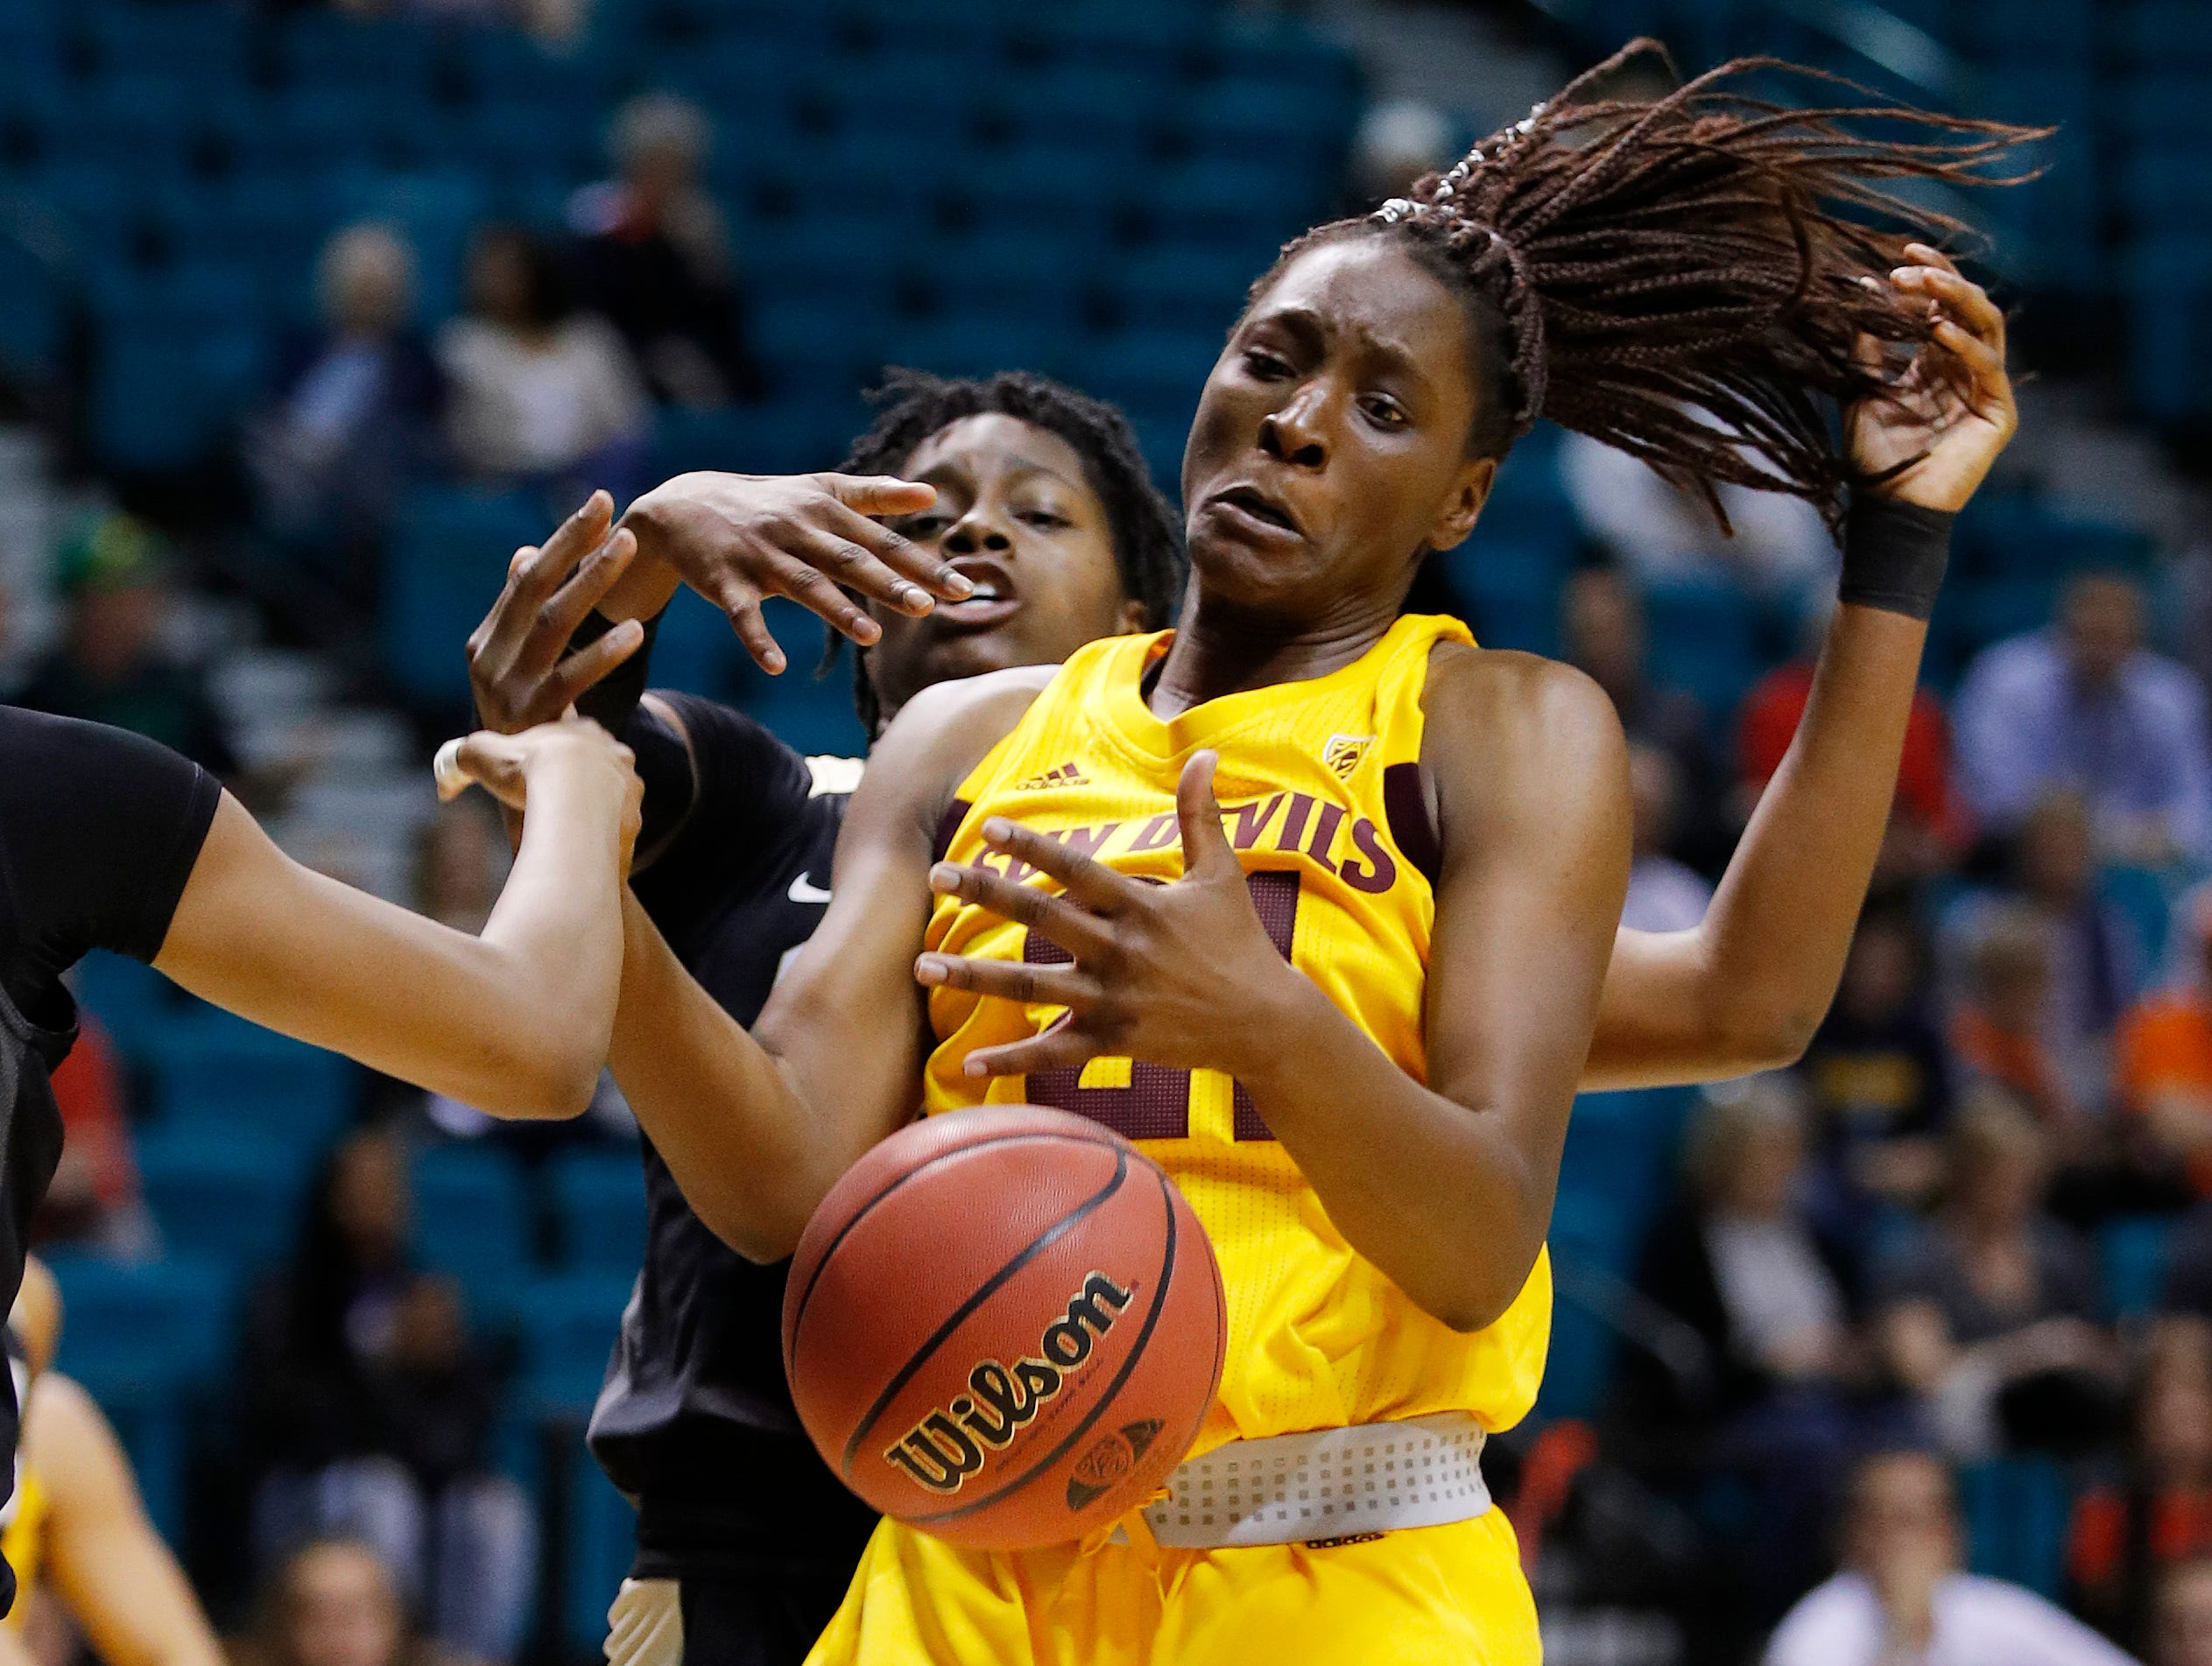 Arizona State's Sophia Elenga, right, battles for a rebound with Colorado's Mya Hollingshed during the second half of an NCAA college basketball game at the Pac-12 women's tournament Thursday, March 7, 2019, in Las Vegas. (AP Photo/John Locher)